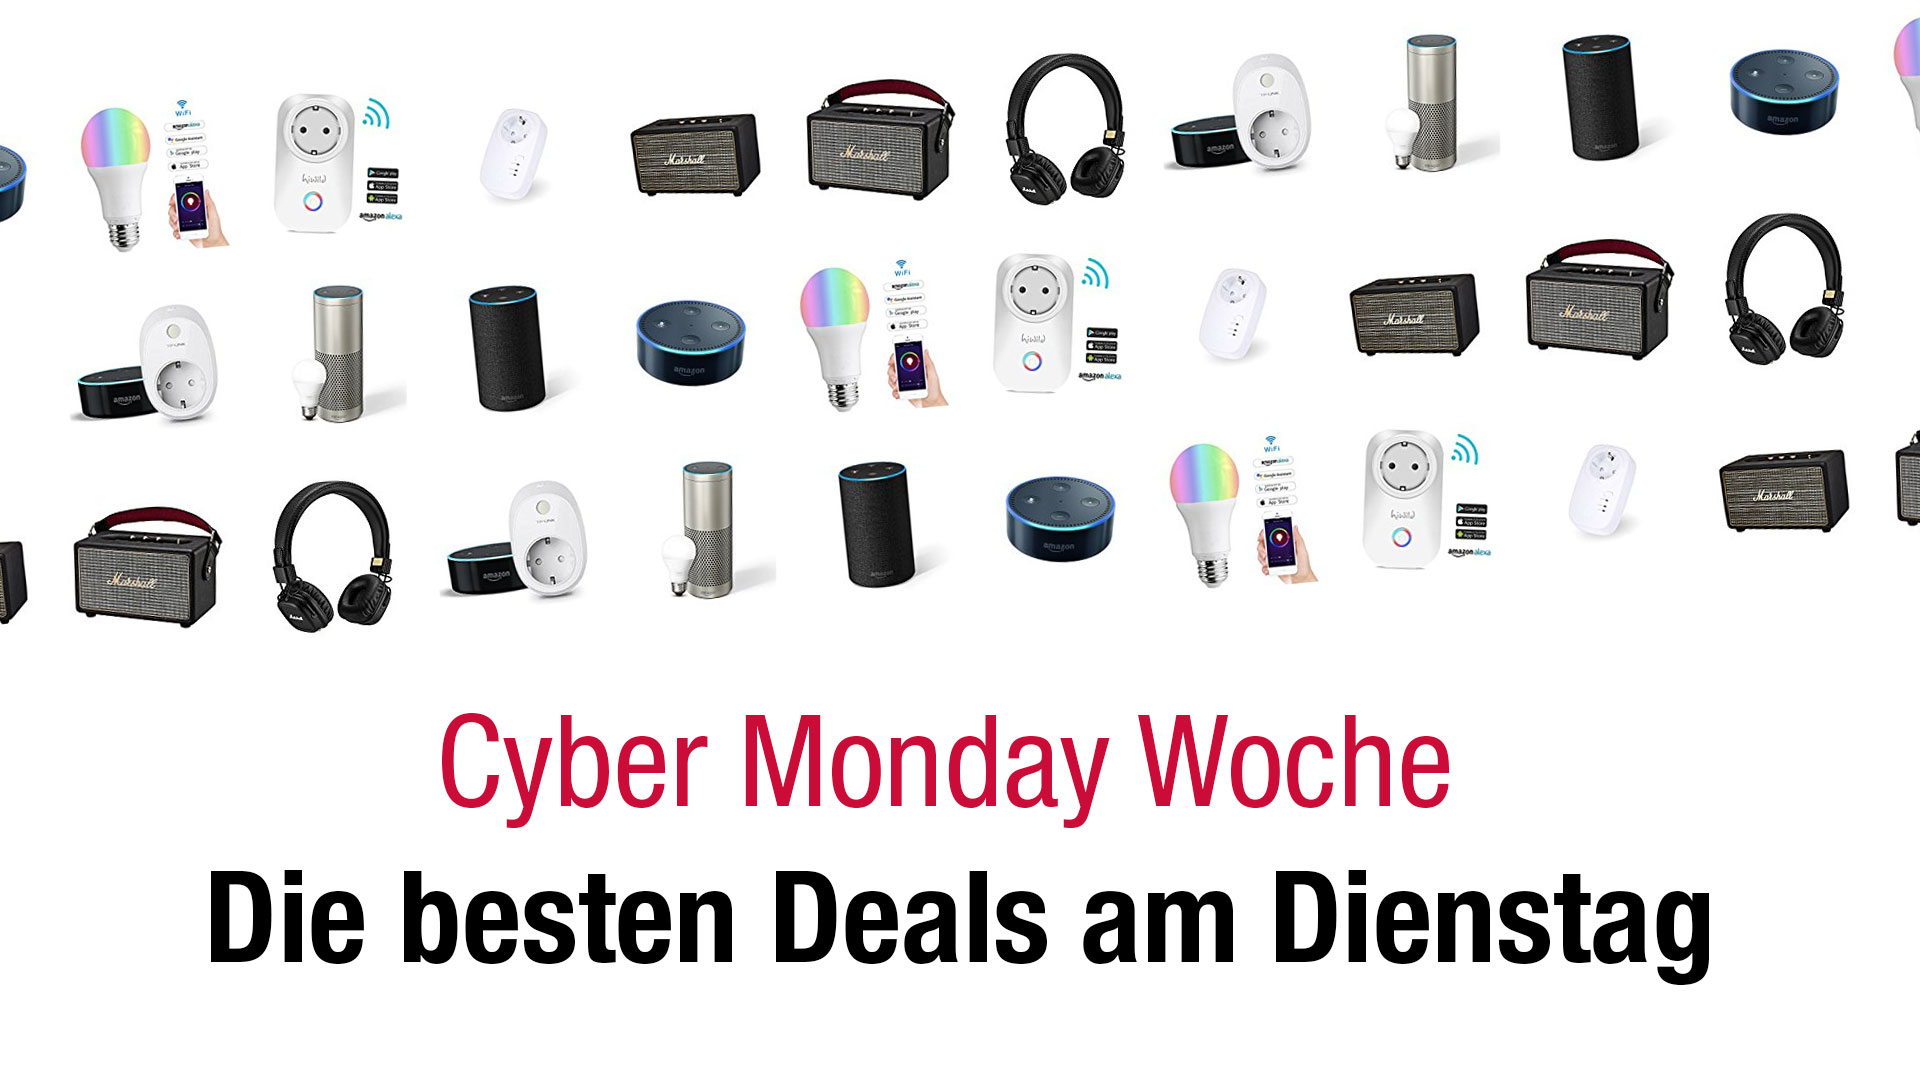 Cyber monday deals mp3 players